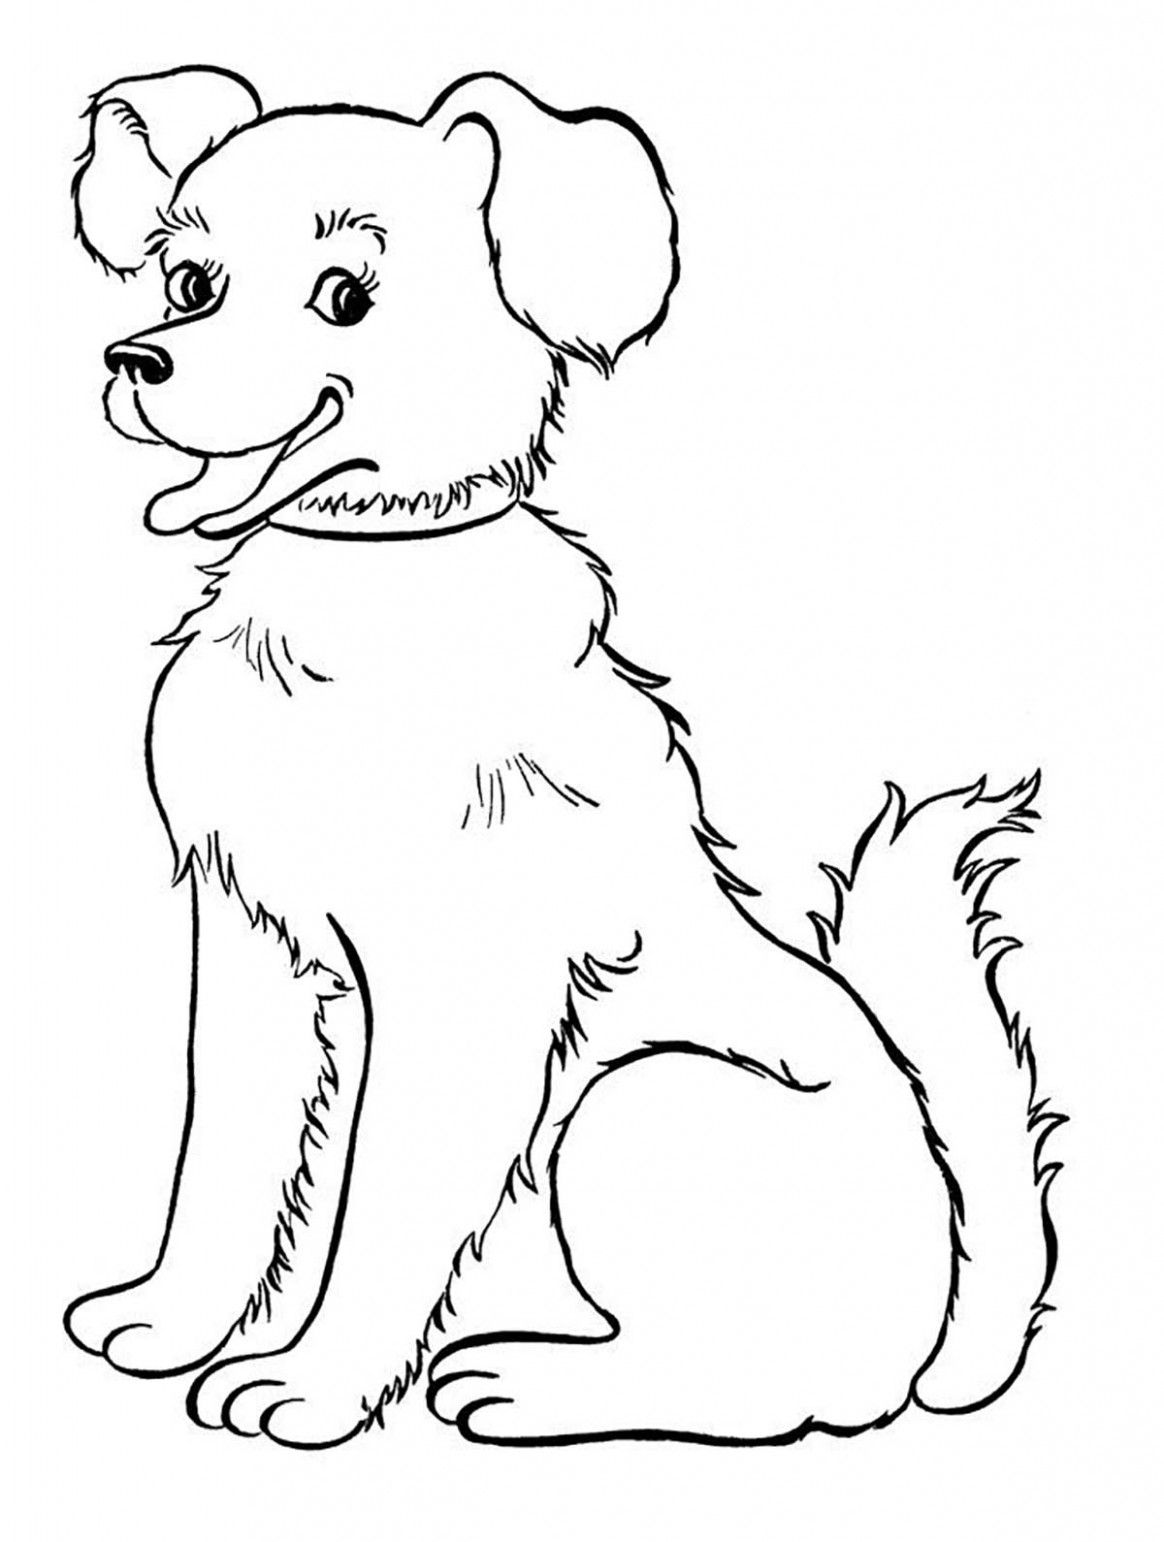 Free Dog Coloring Pages For Kids Printable Image Jblogs In 2020 Dog Coloring Page Puppy Coloring Pages Animal Coloring Pages